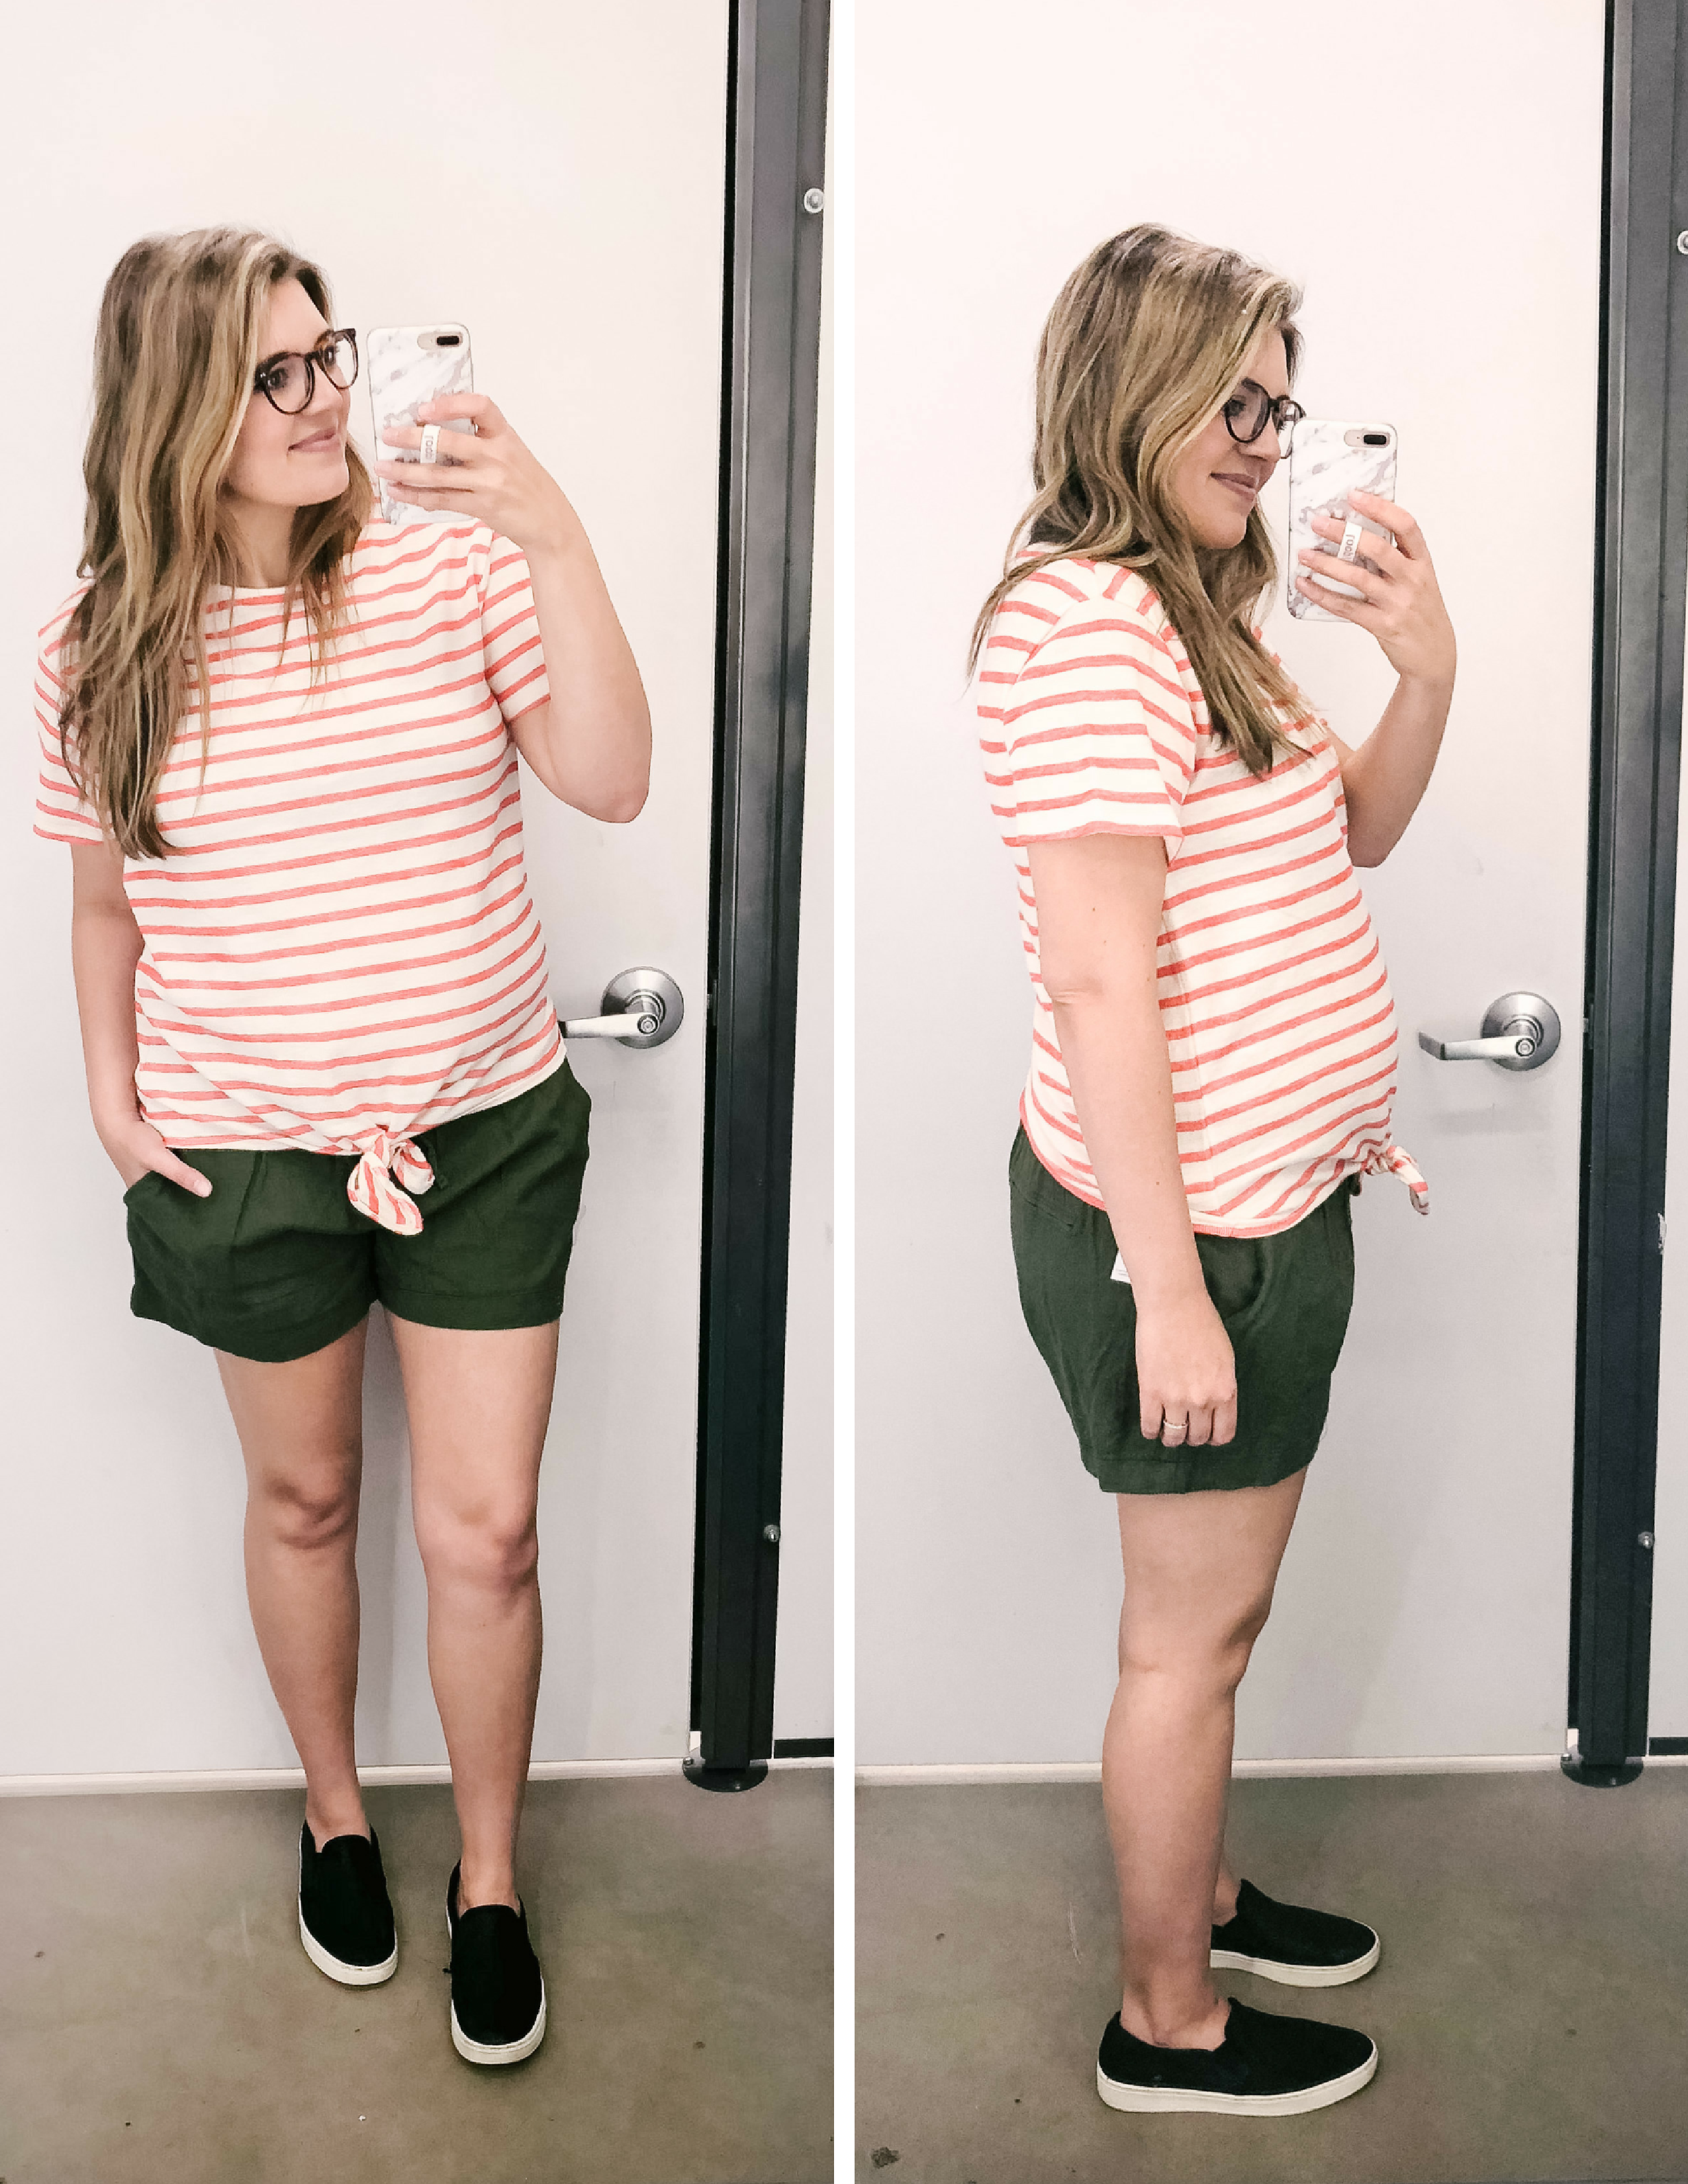 Old Navy Spring dressing room reviews 2018 - cutest non-maternity outfit ideas Old Navy | bylaurenm.com